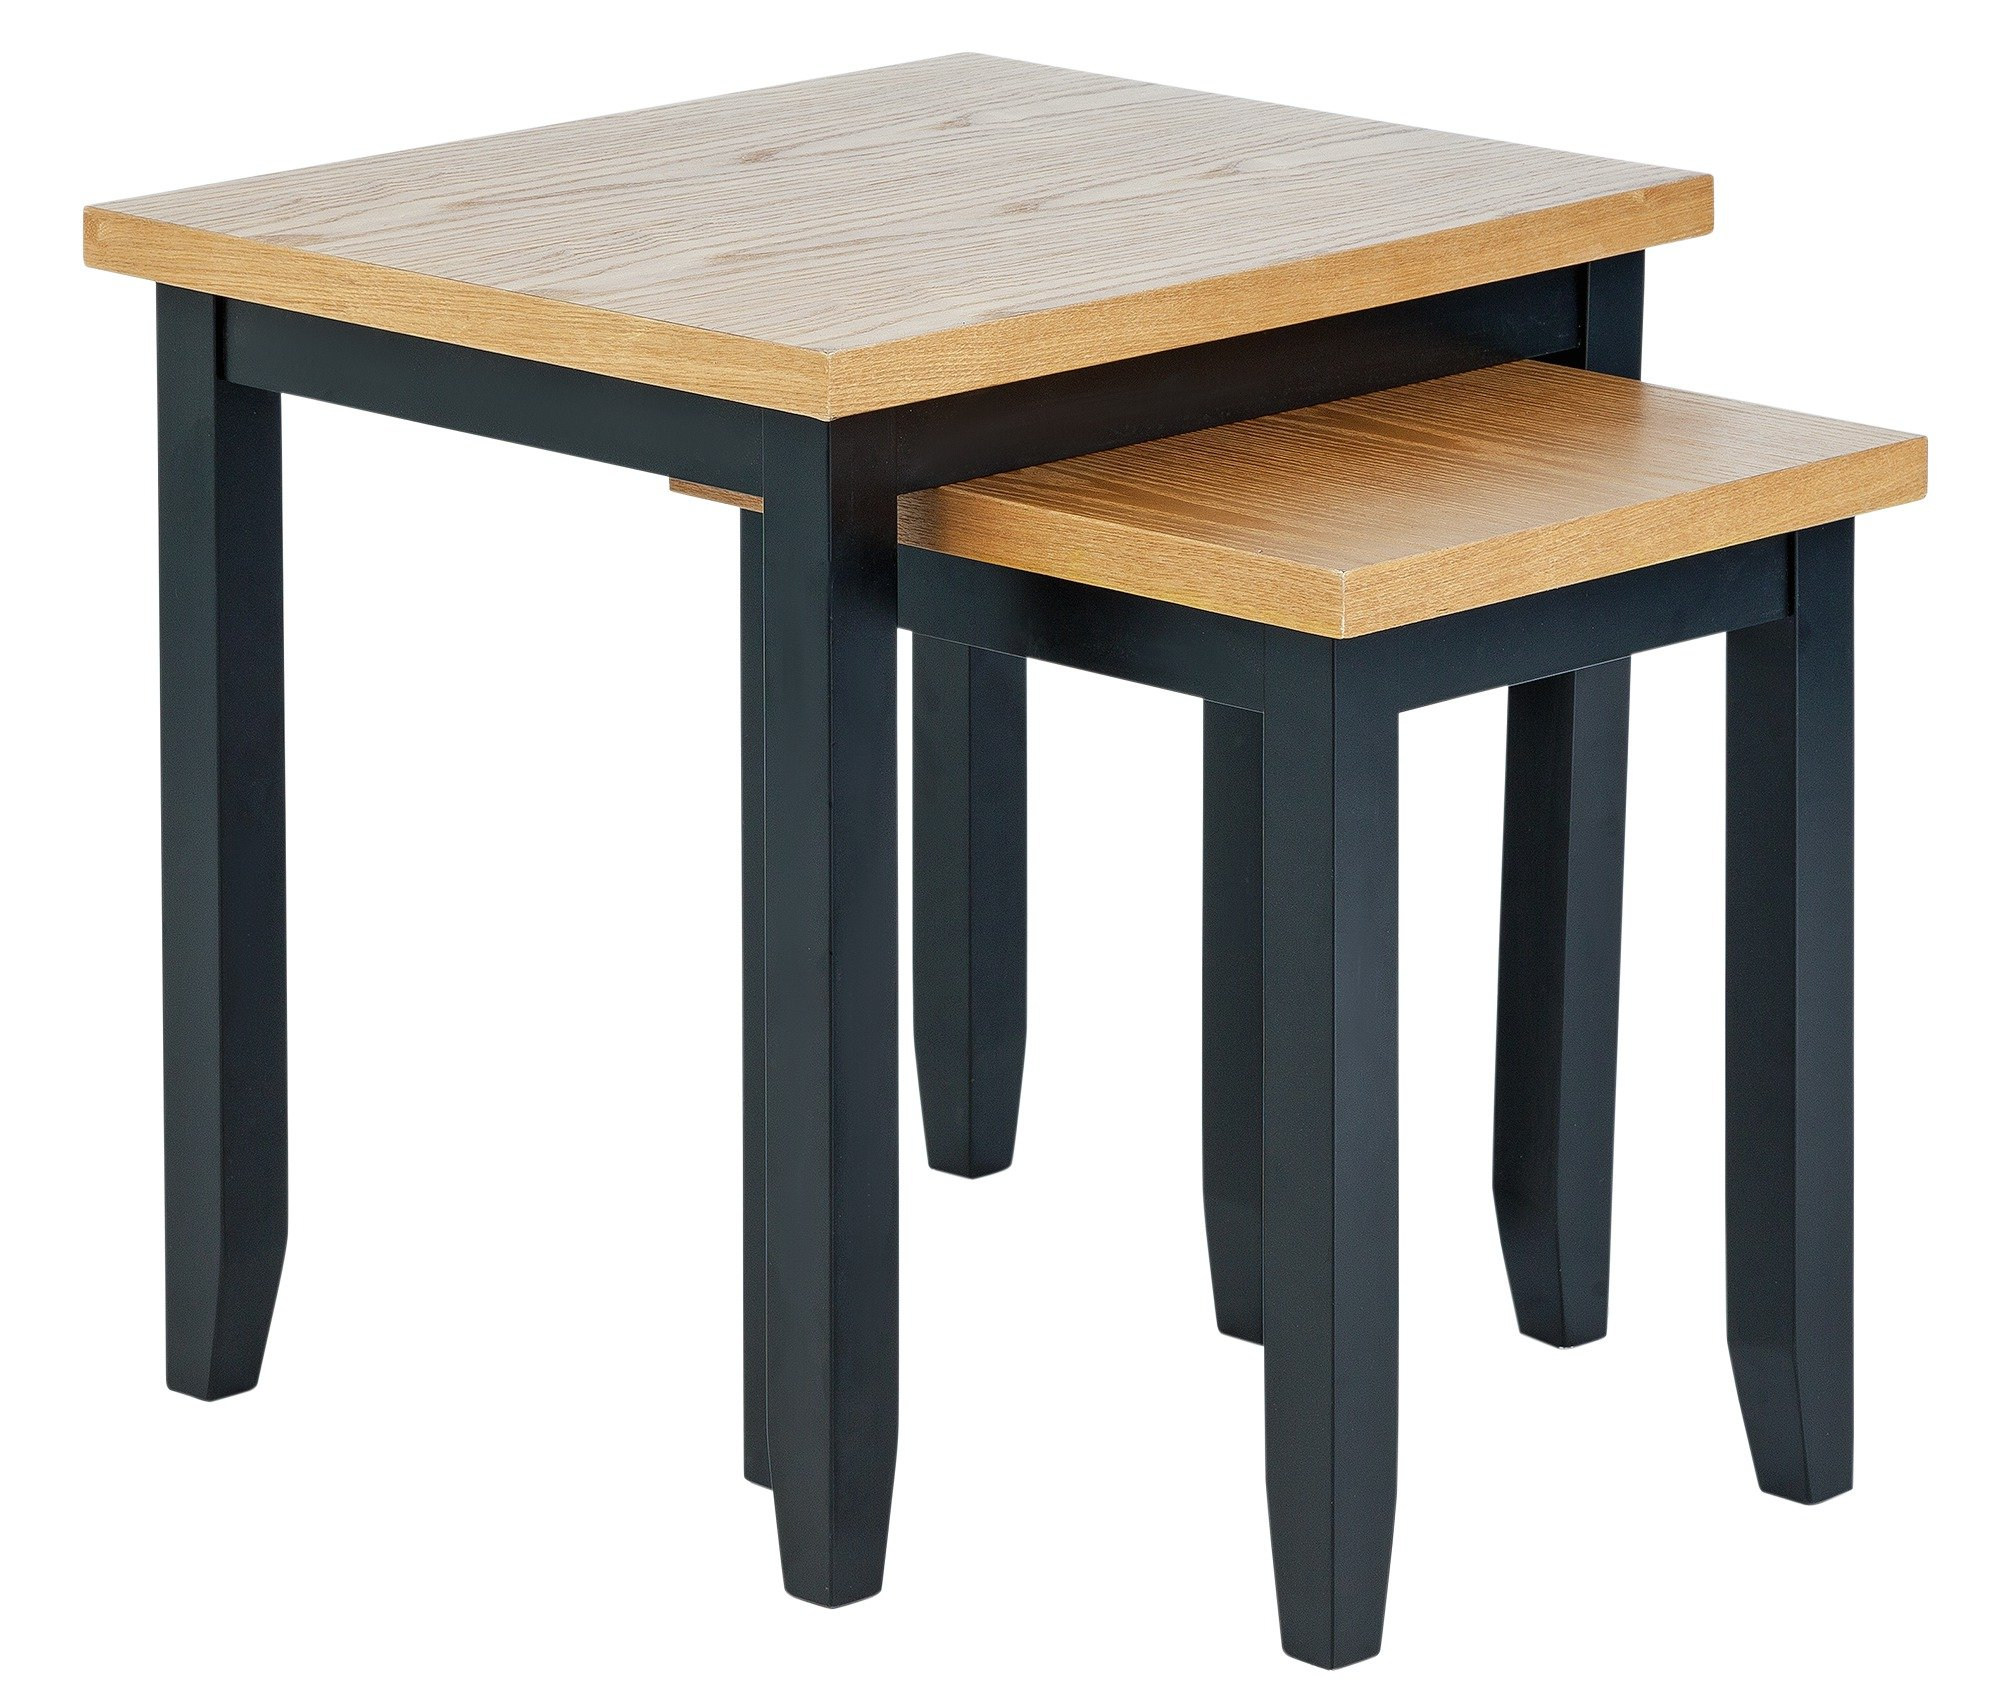 Nest of tables furniture sales today for Furniture sales today